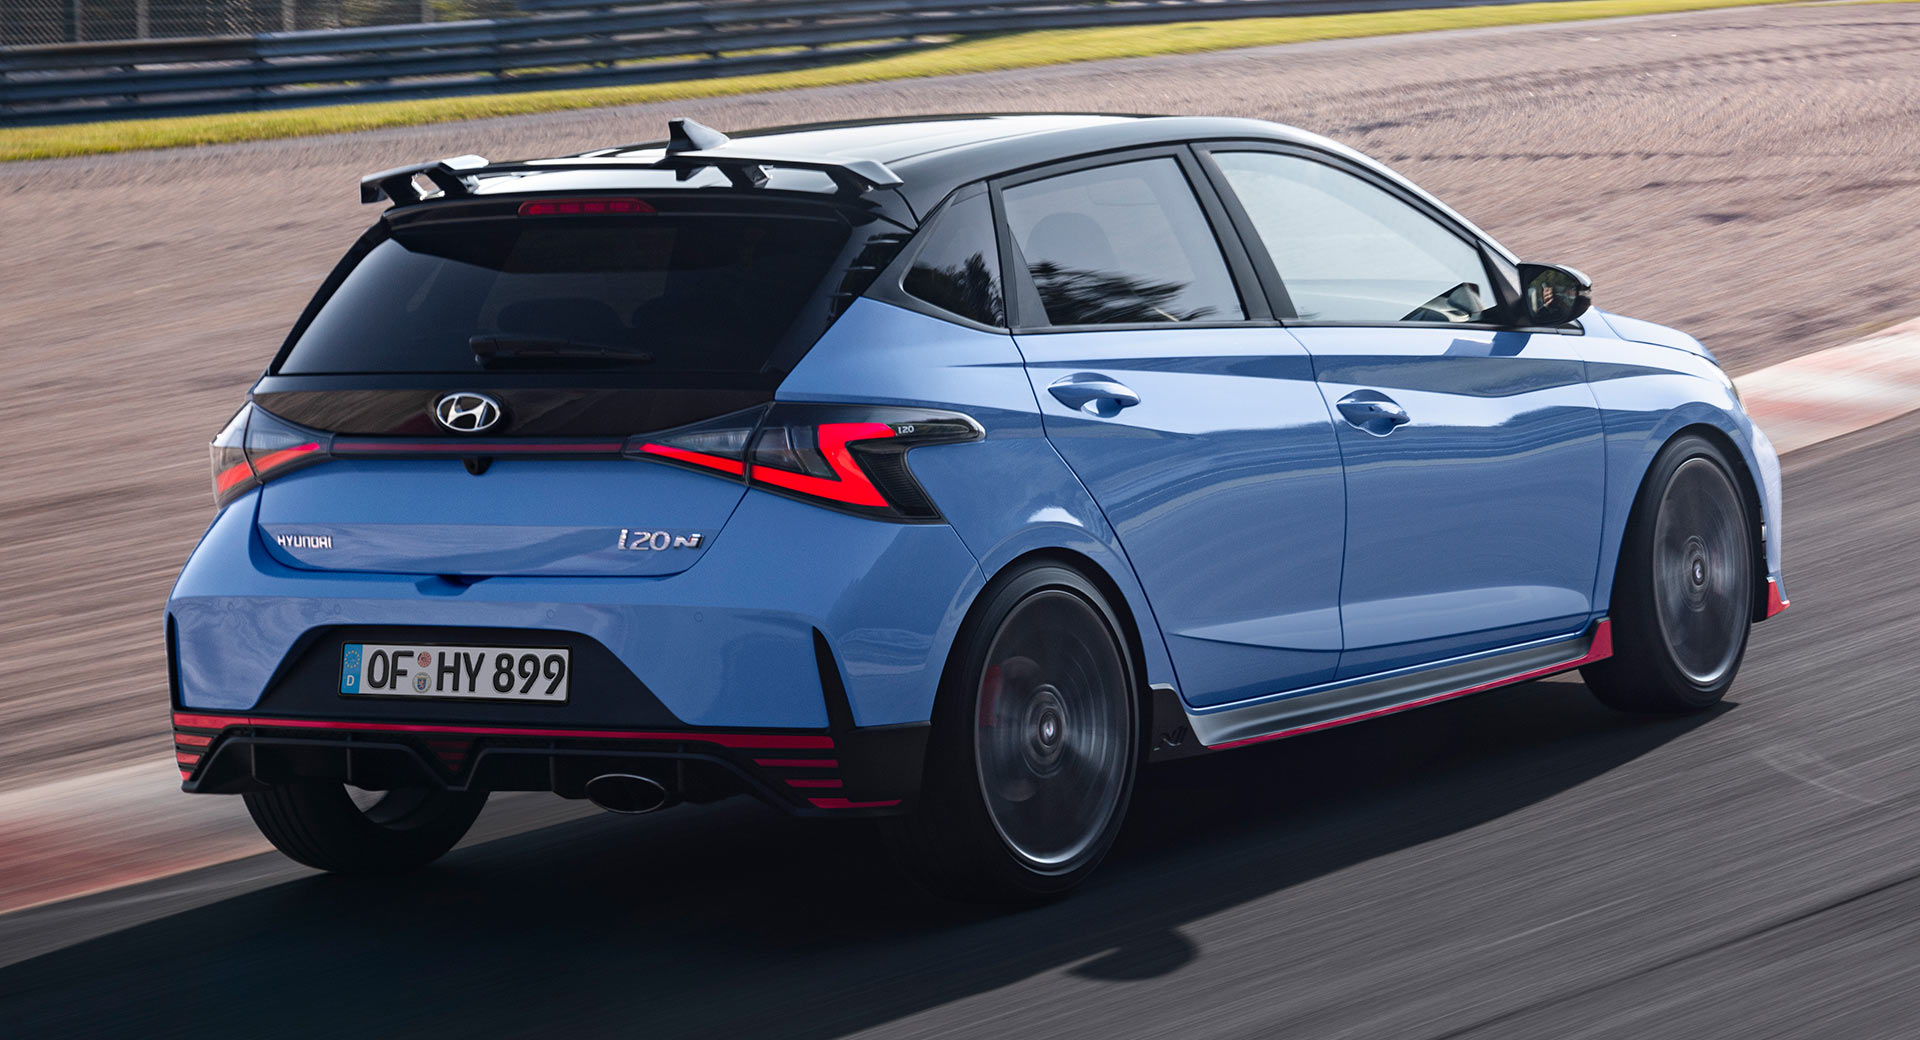 Hyundai i20 N unveiled, launch in early 2021